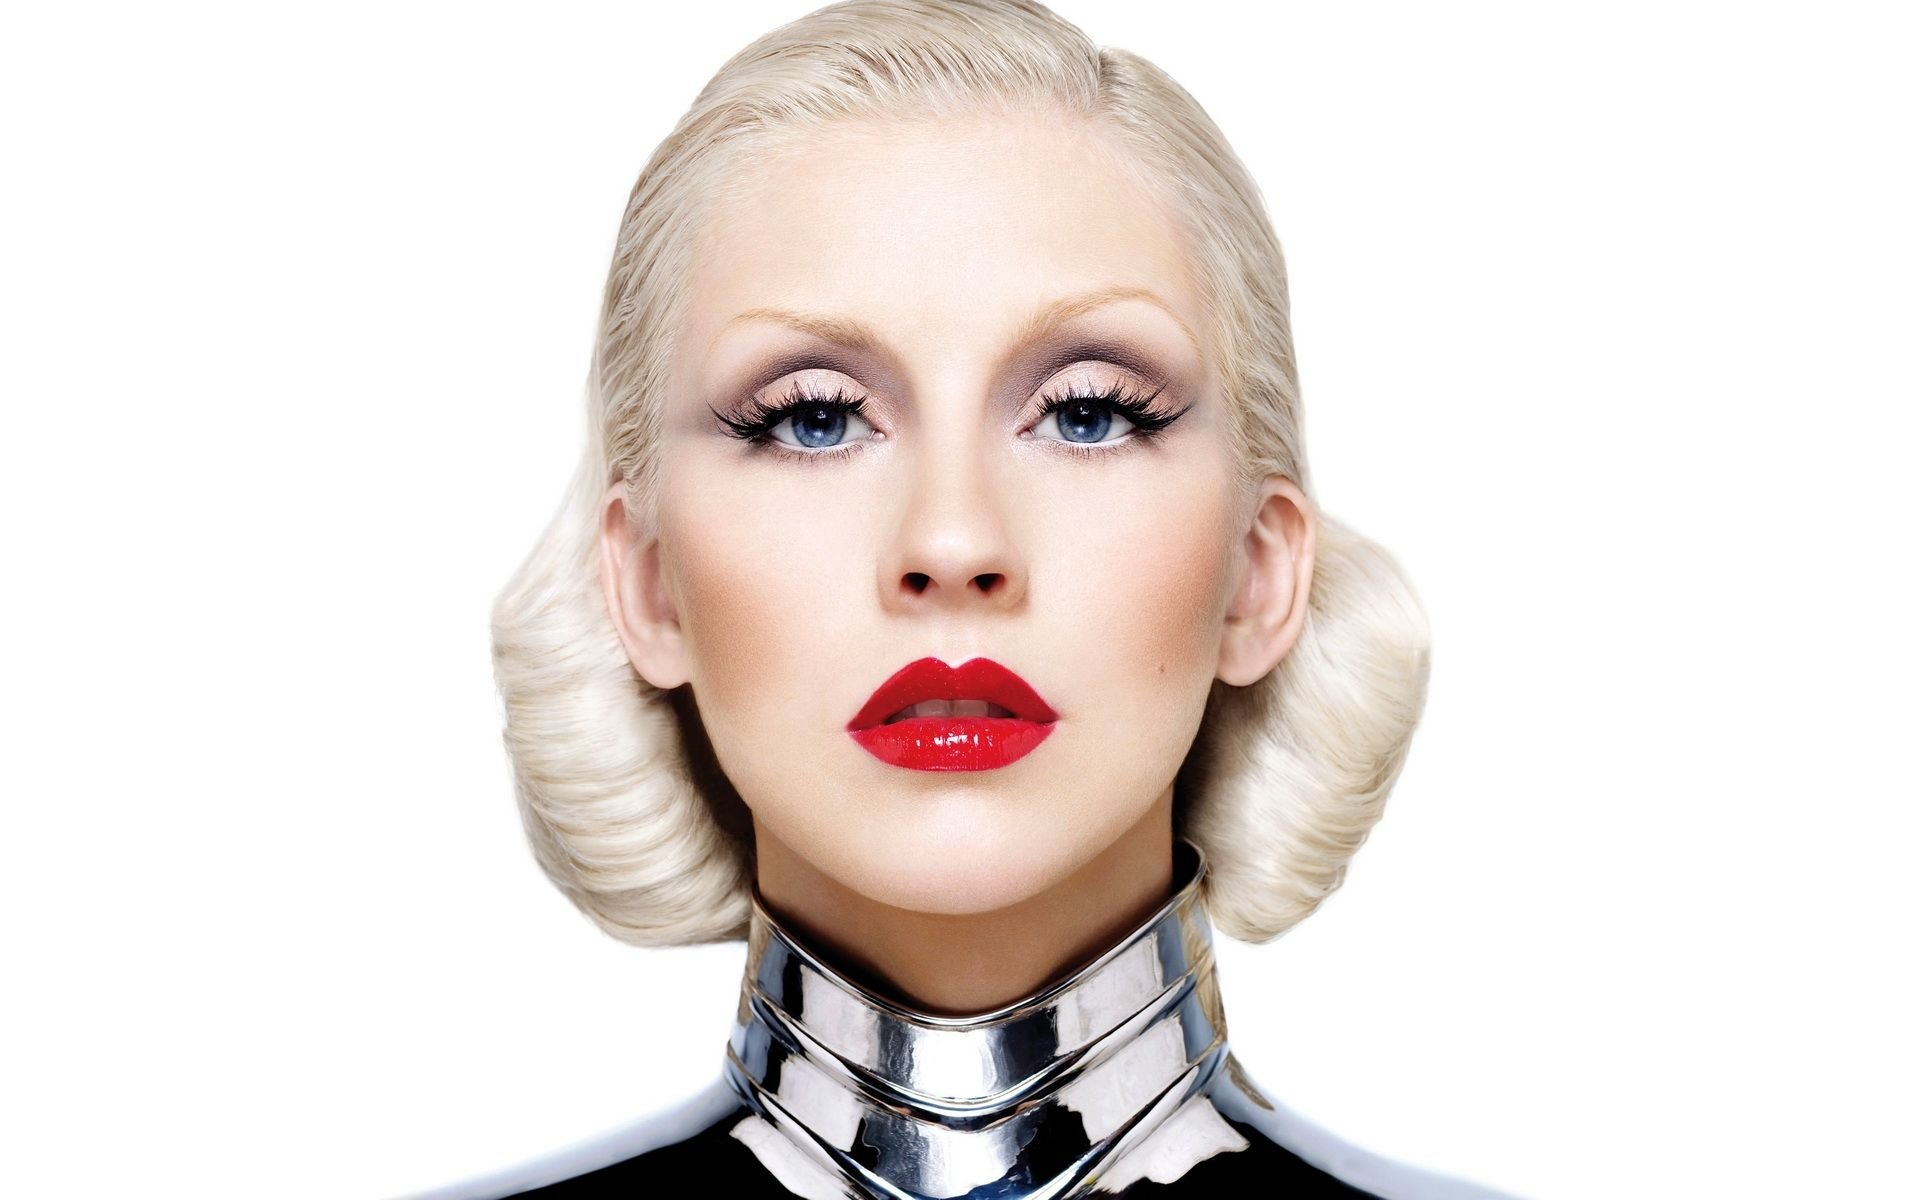 Christina Aguilera HD wallpaper 22   Apnatimepasscom 1920x1200